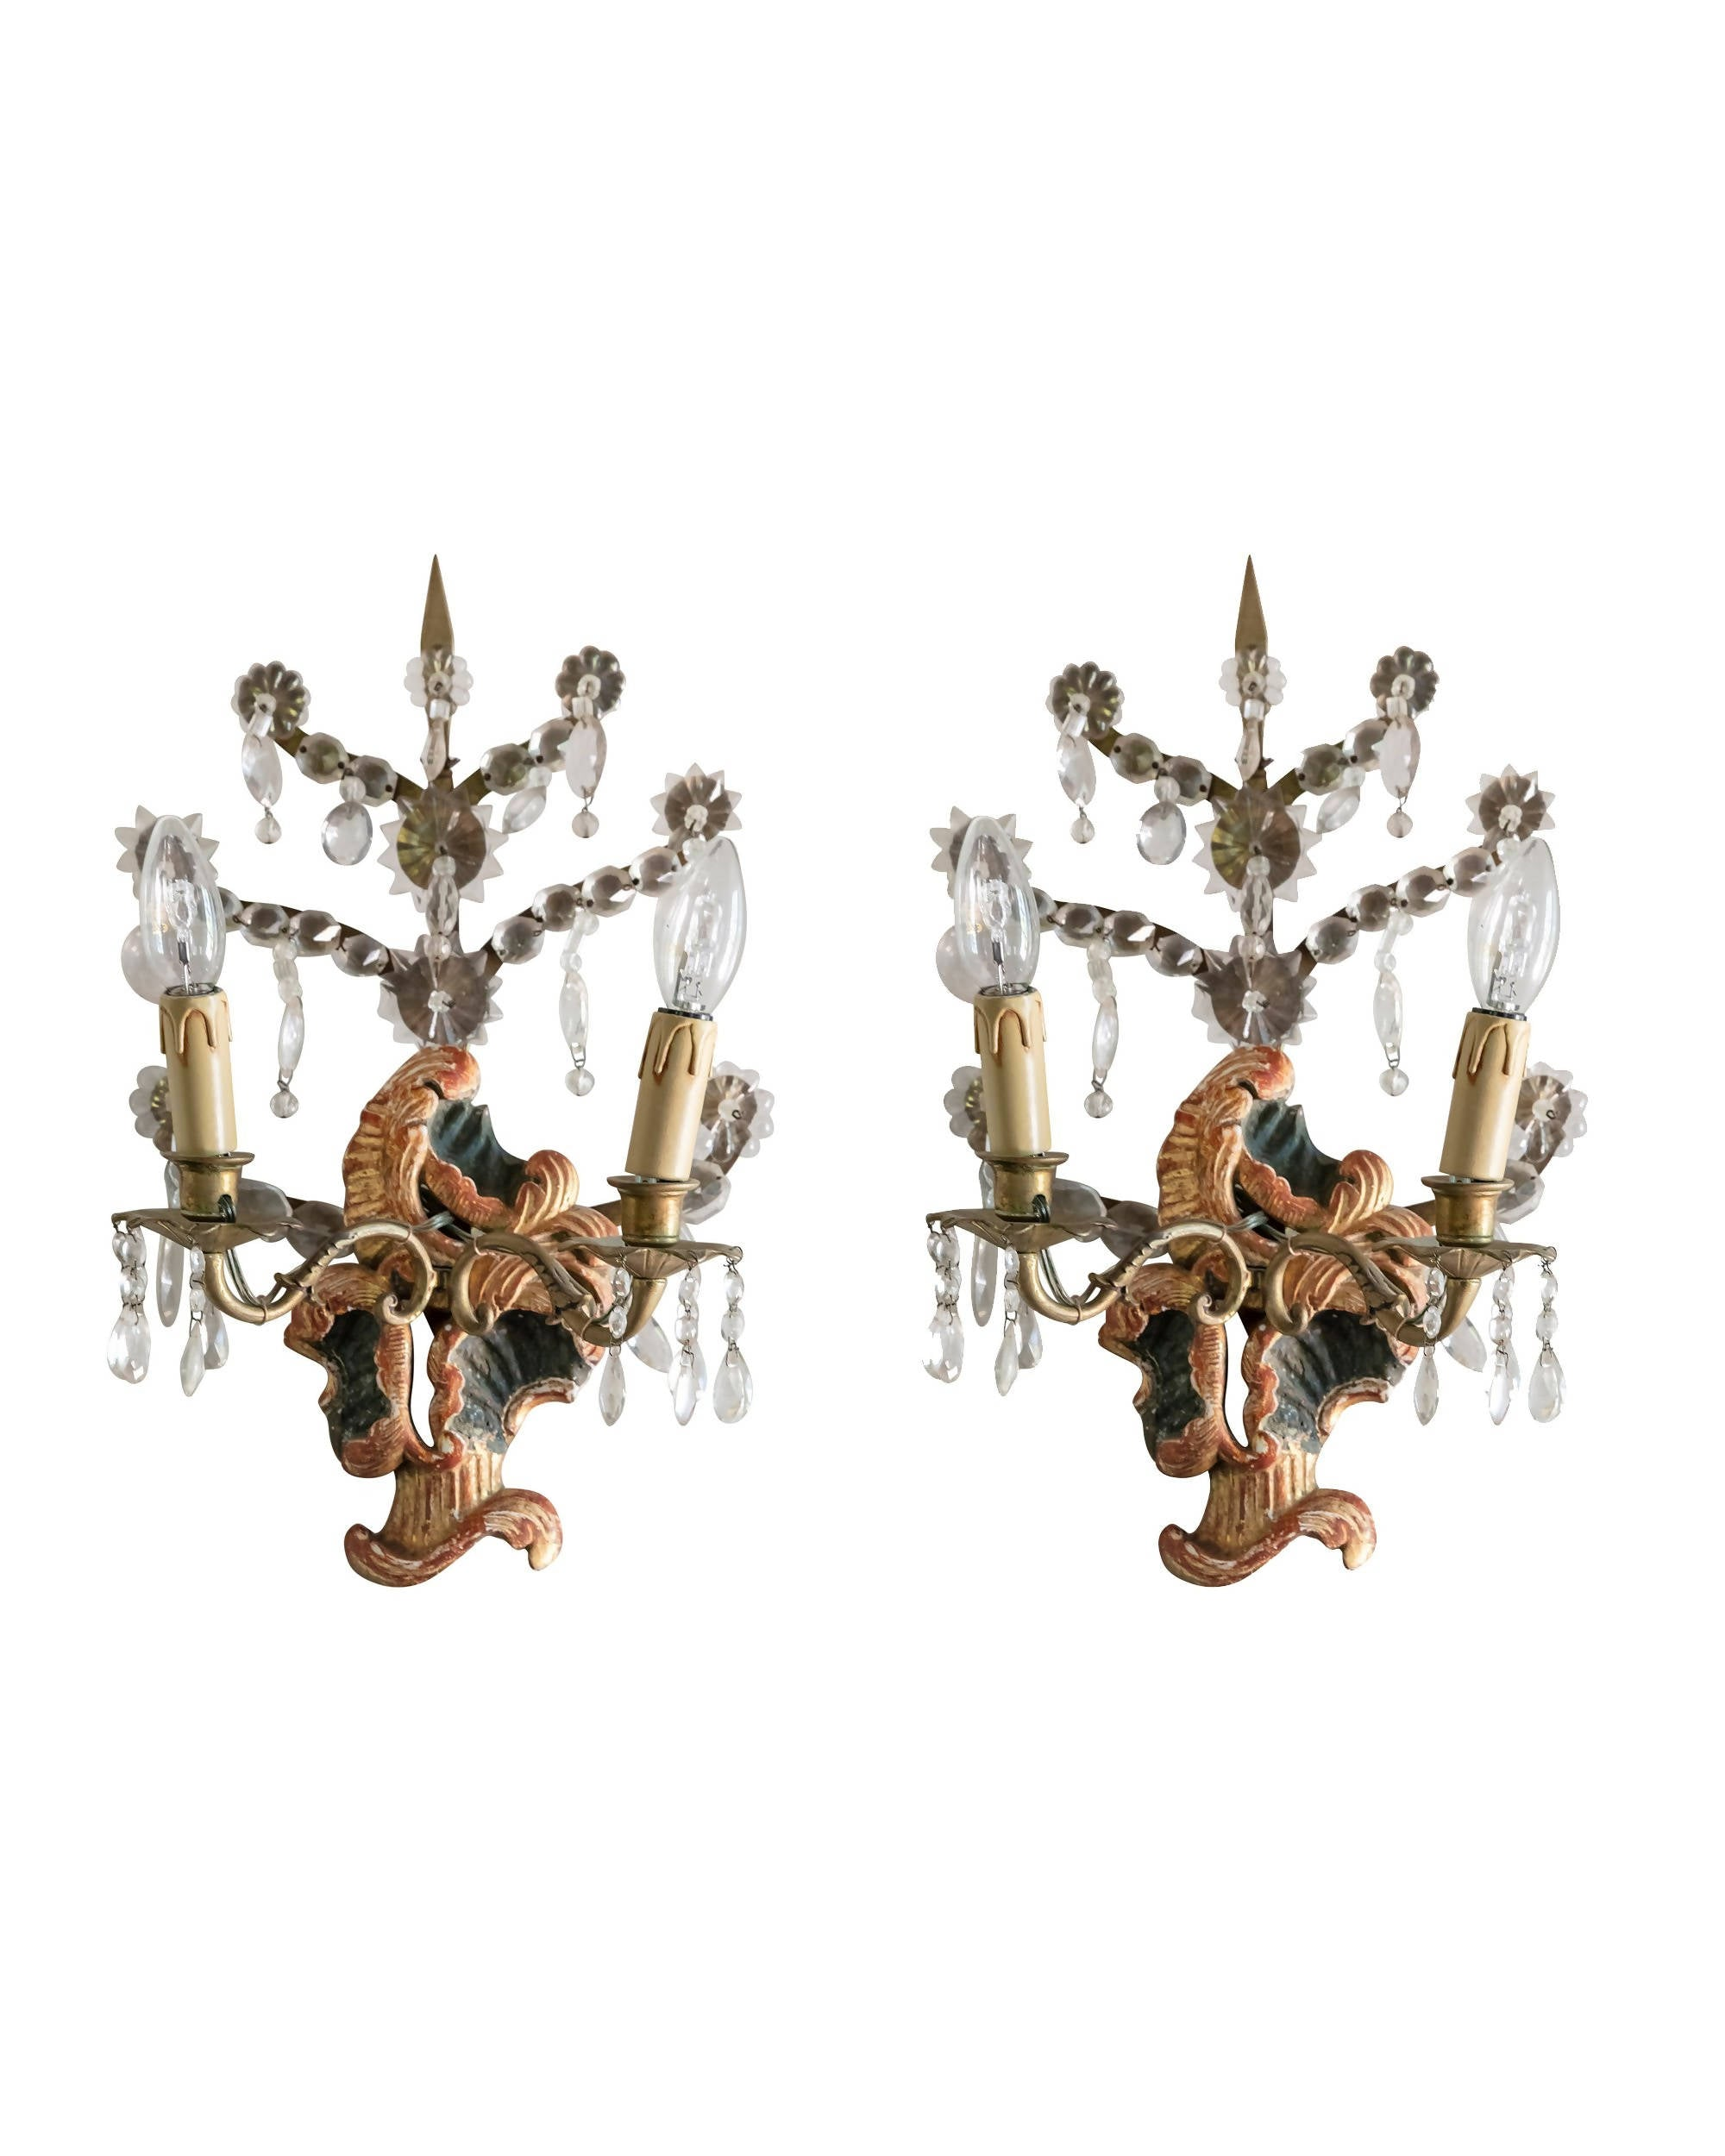 Pair of sconces in polychrome wood and crystals. Italy. XVIIIth century